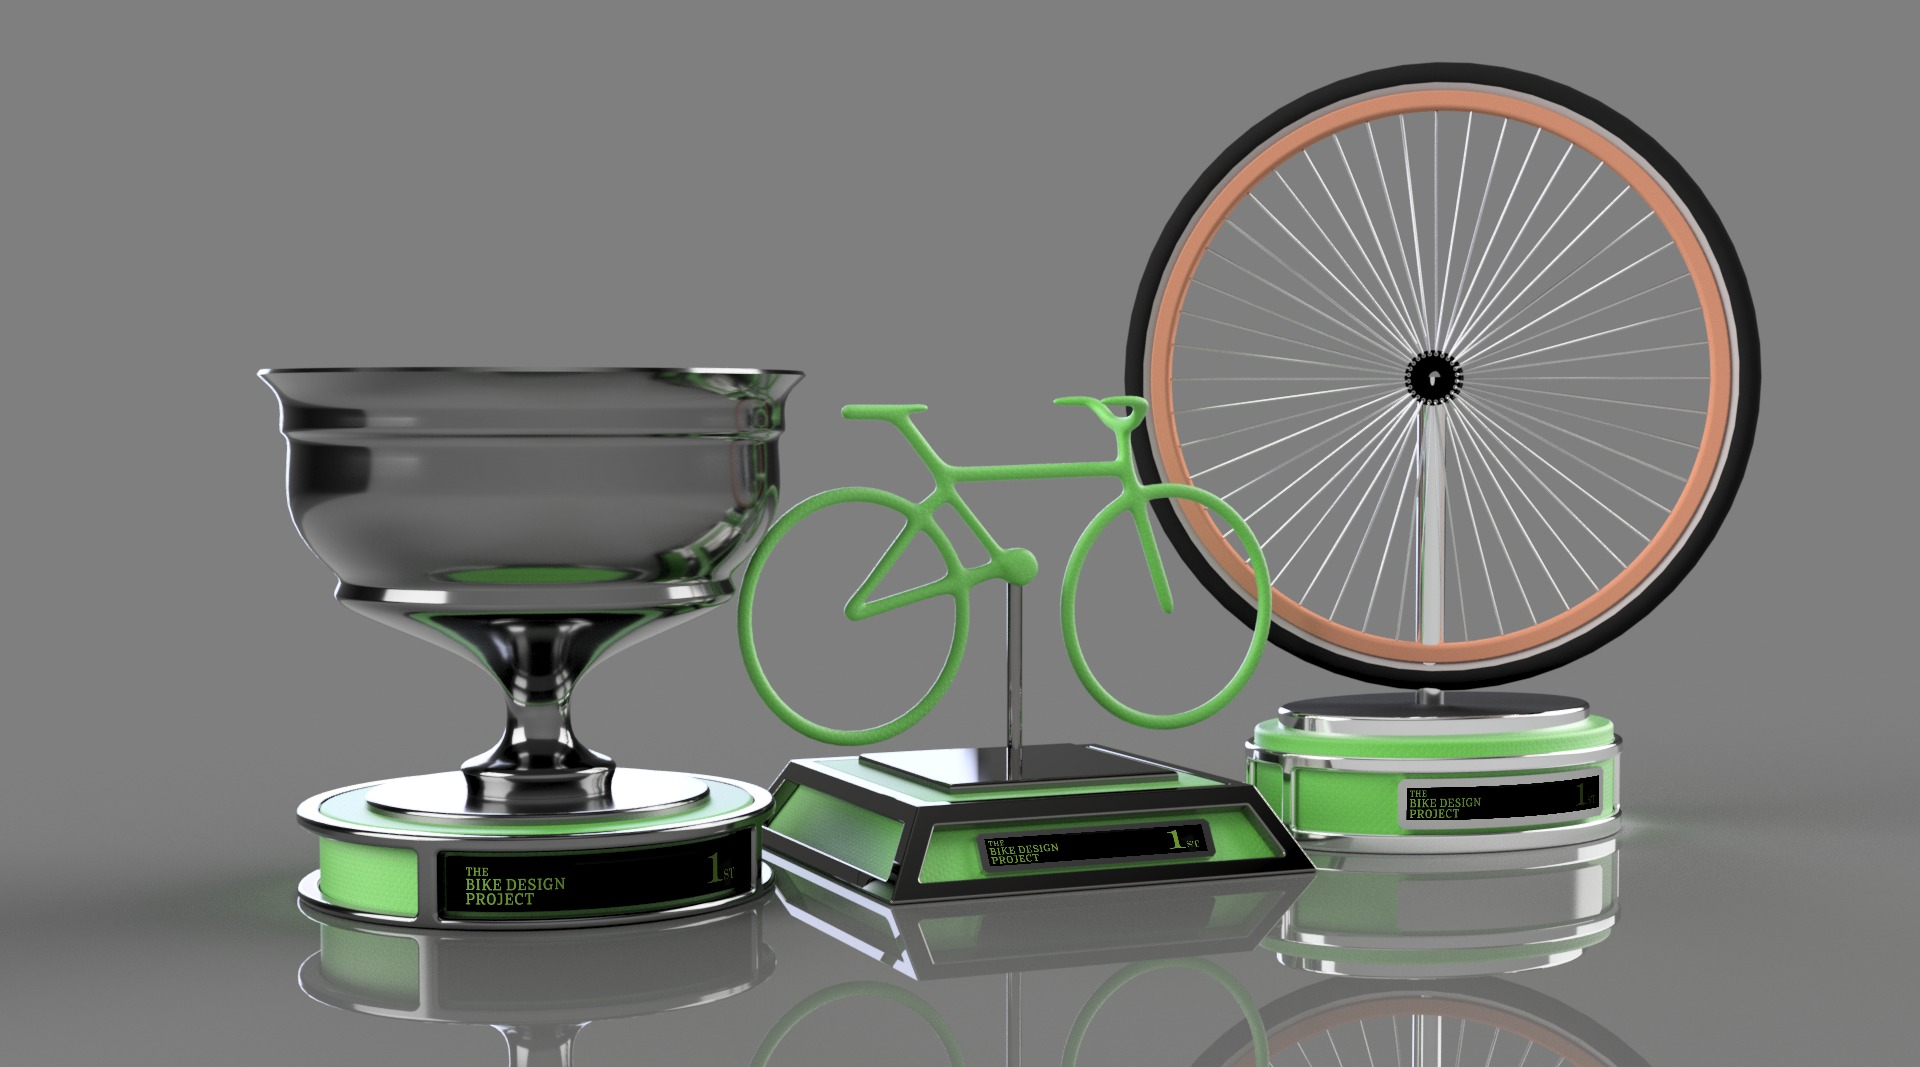 The_bike_project_concepts